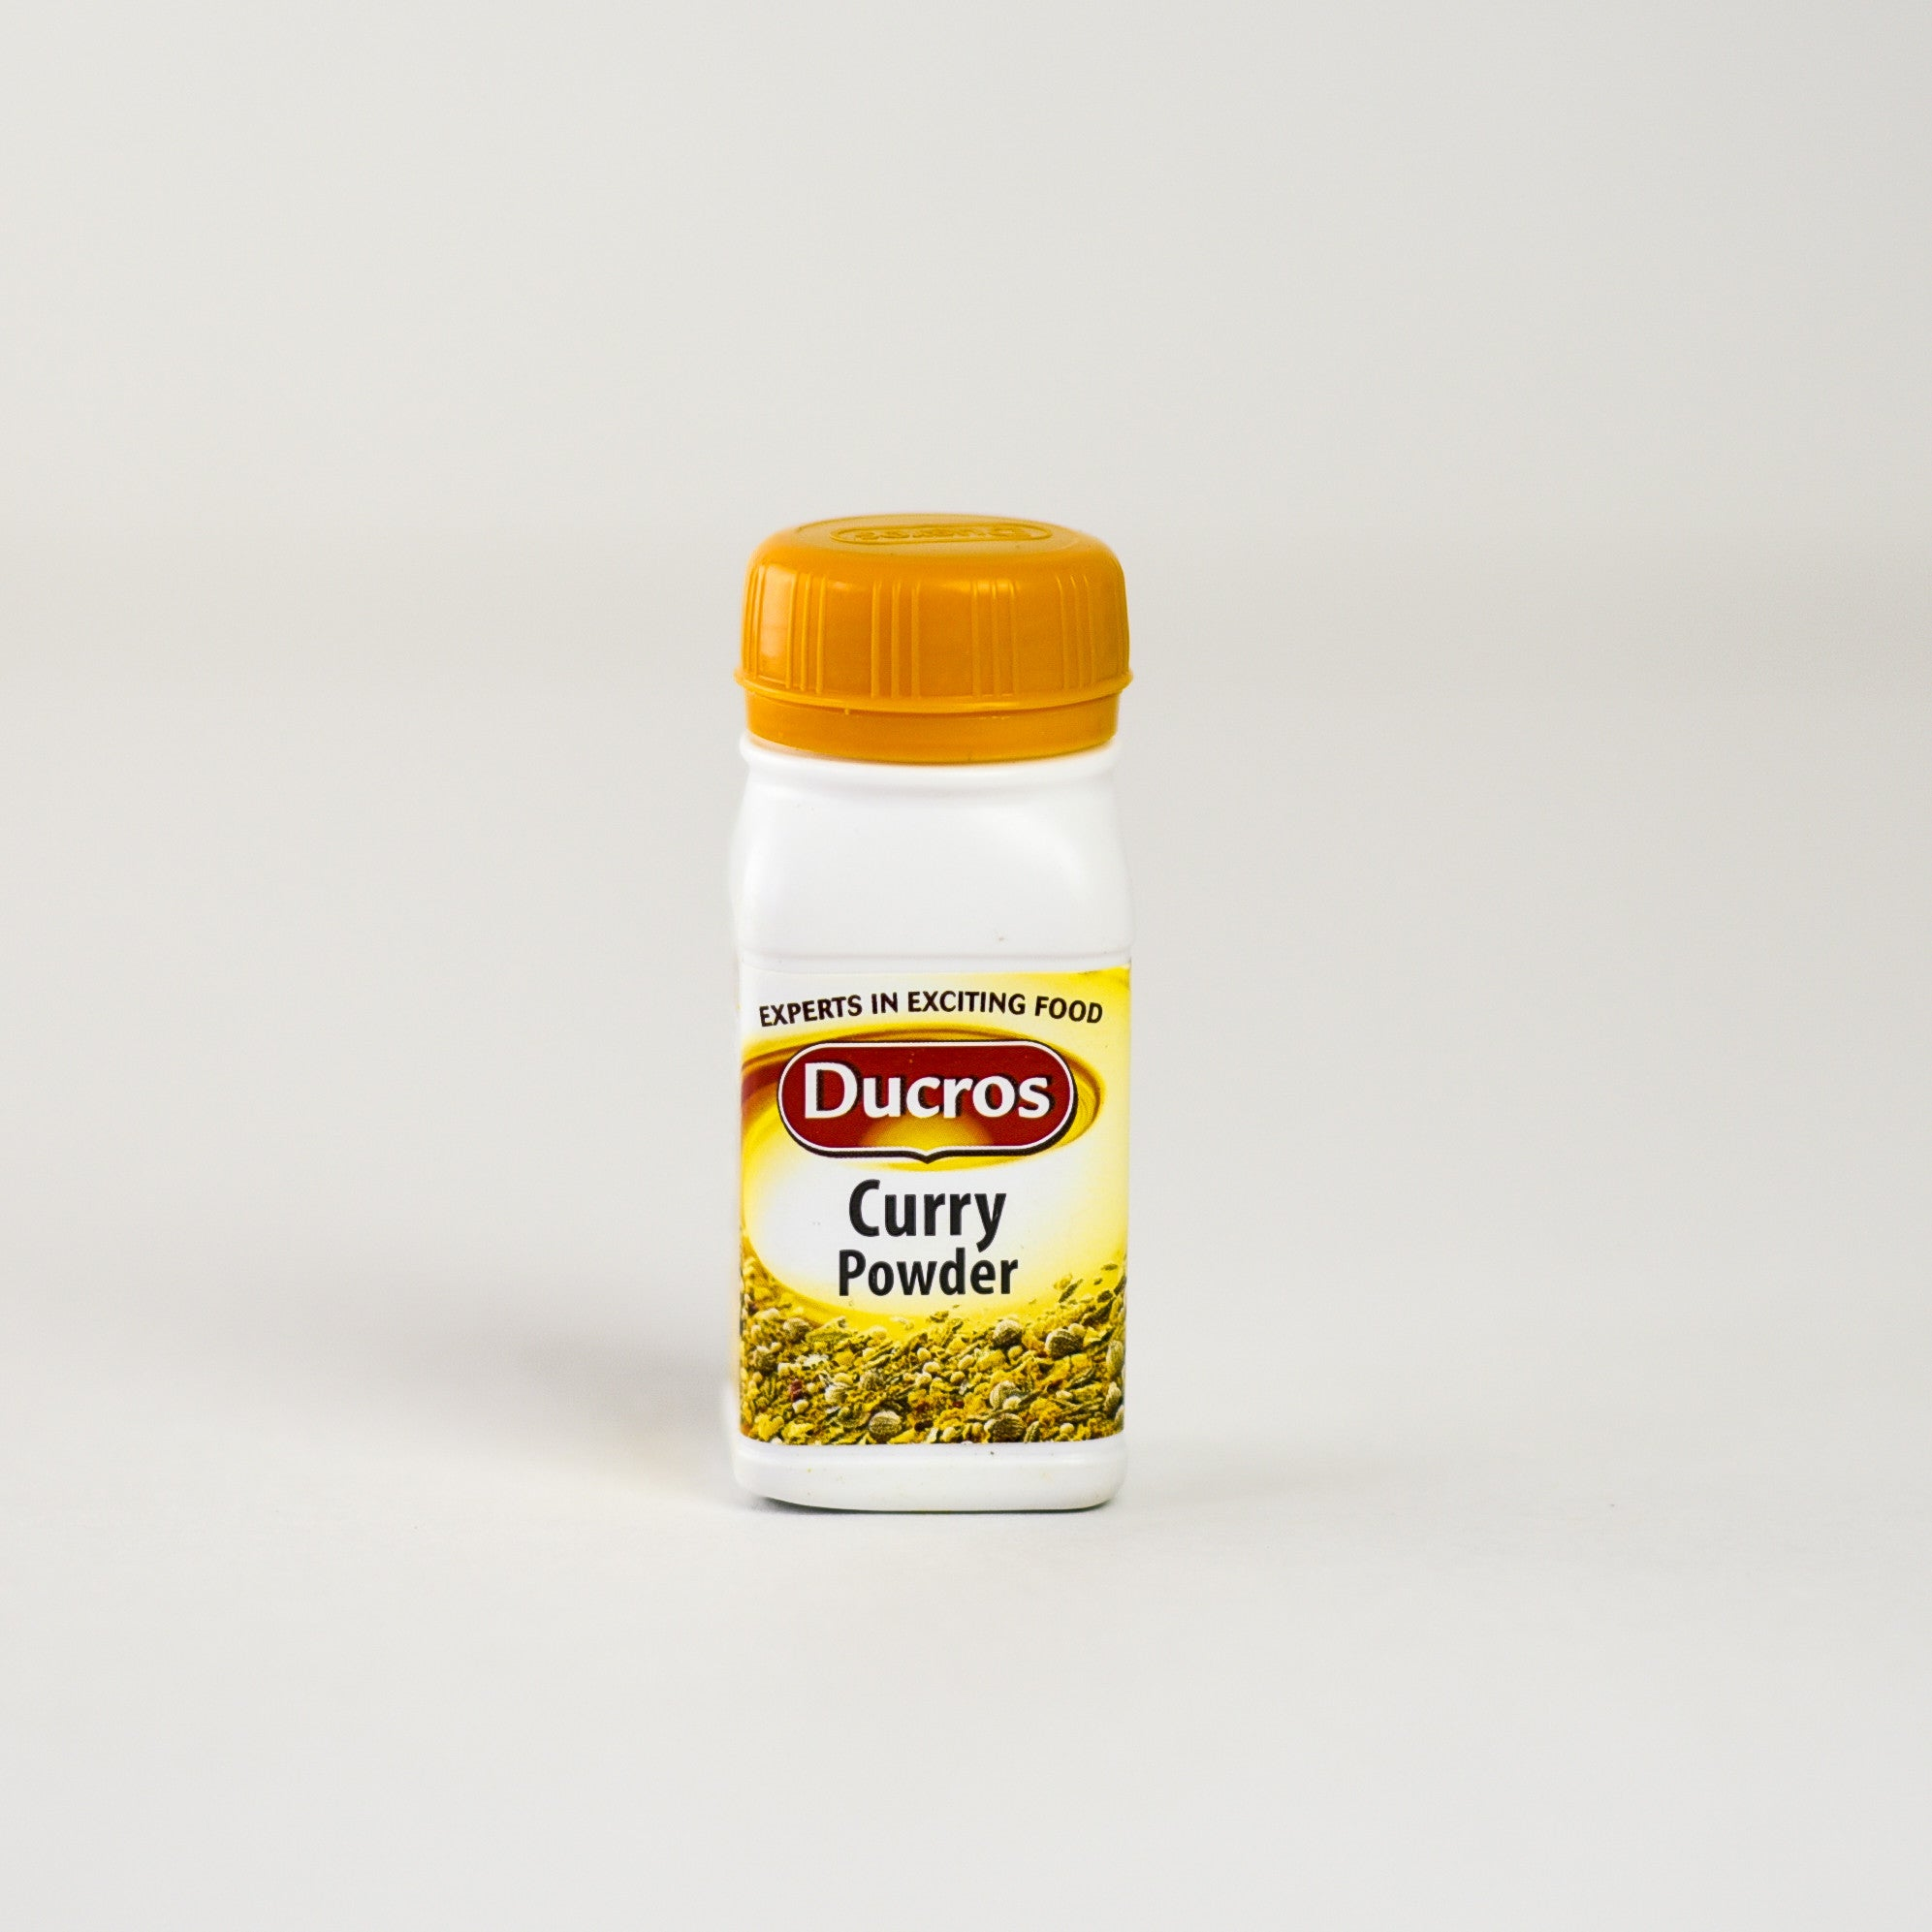 Ducross Curry Powder